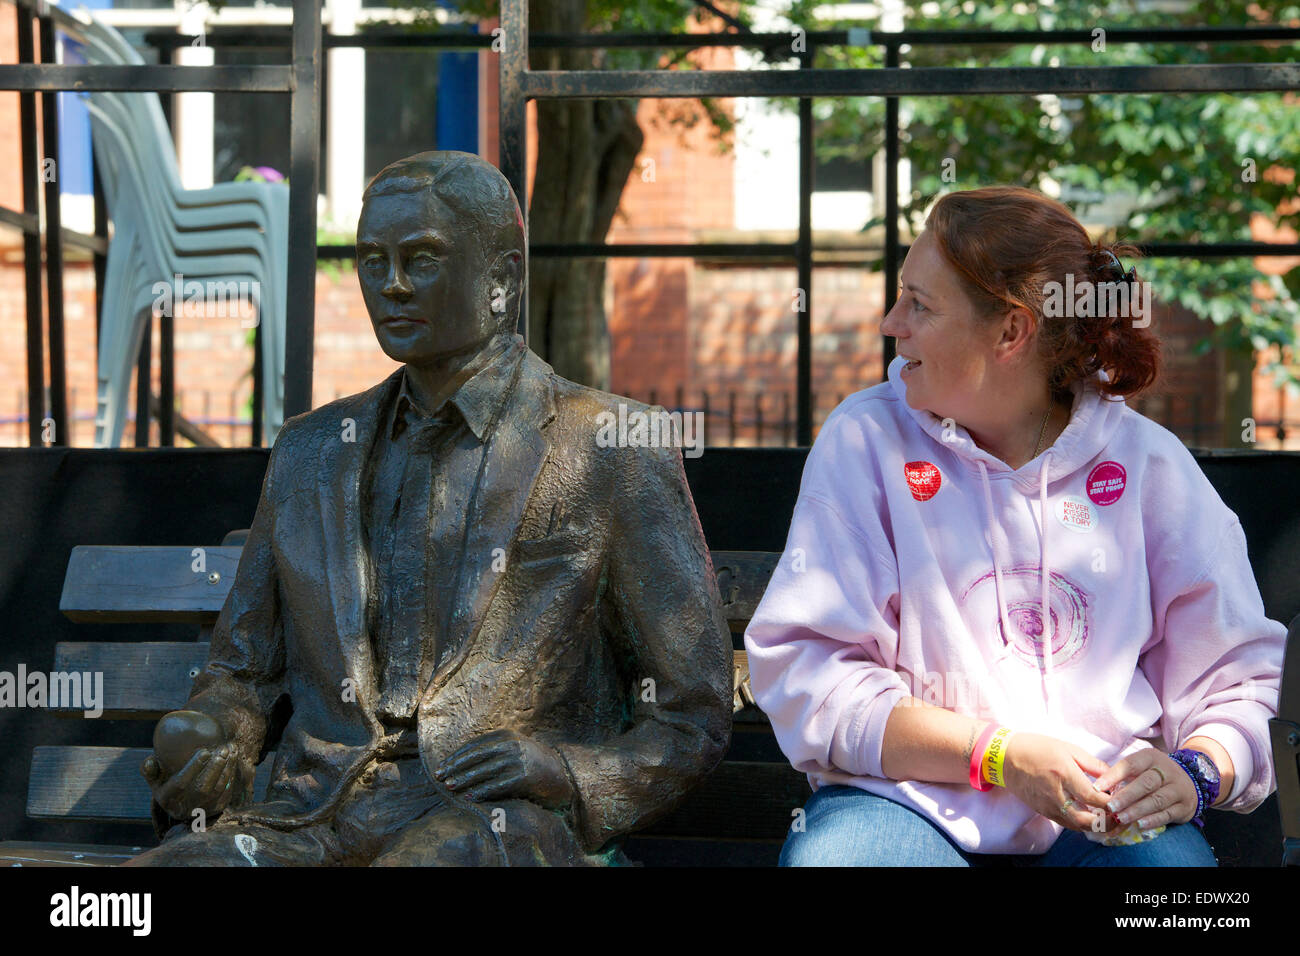 Woman sits down beside the statue of Alan Turing in Sackville Gardens, Manchester. - Stock Image